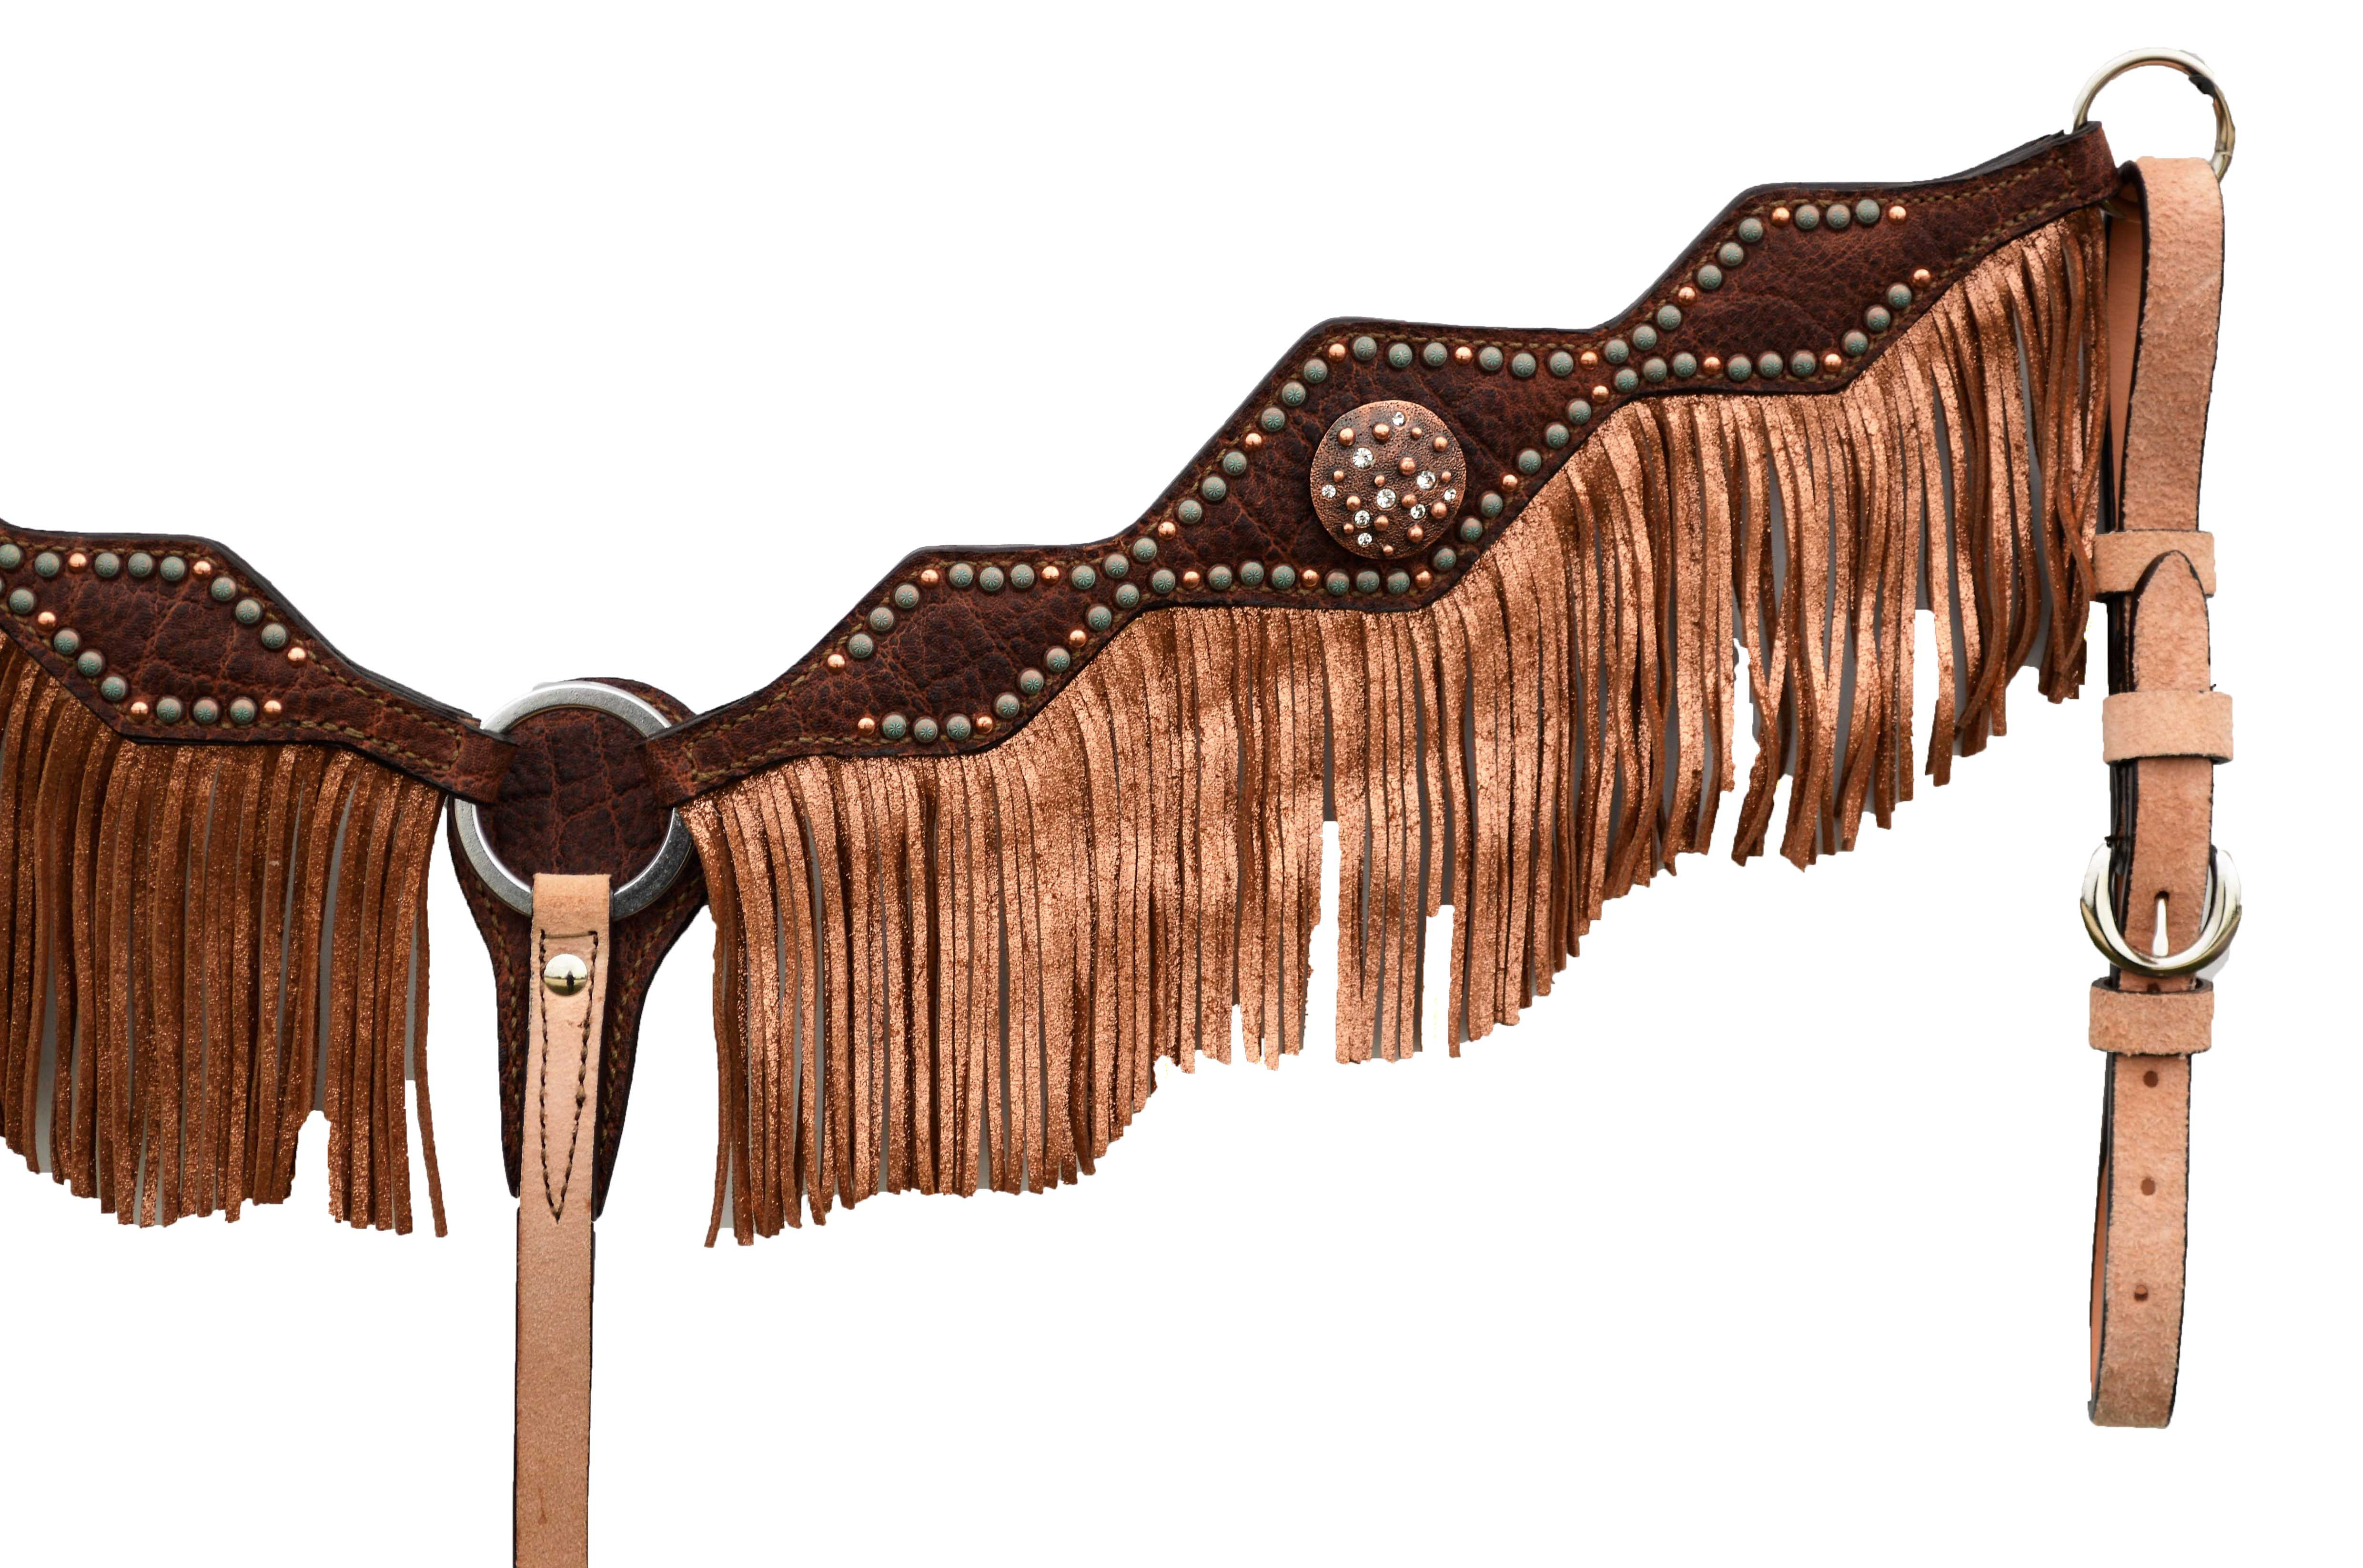 3F46-RW DIAMOND CUT BREASTCOLLAR WITH REDWOOD ELEPHANT OVERLAY WITH CI CONCHOS AND FRINGE